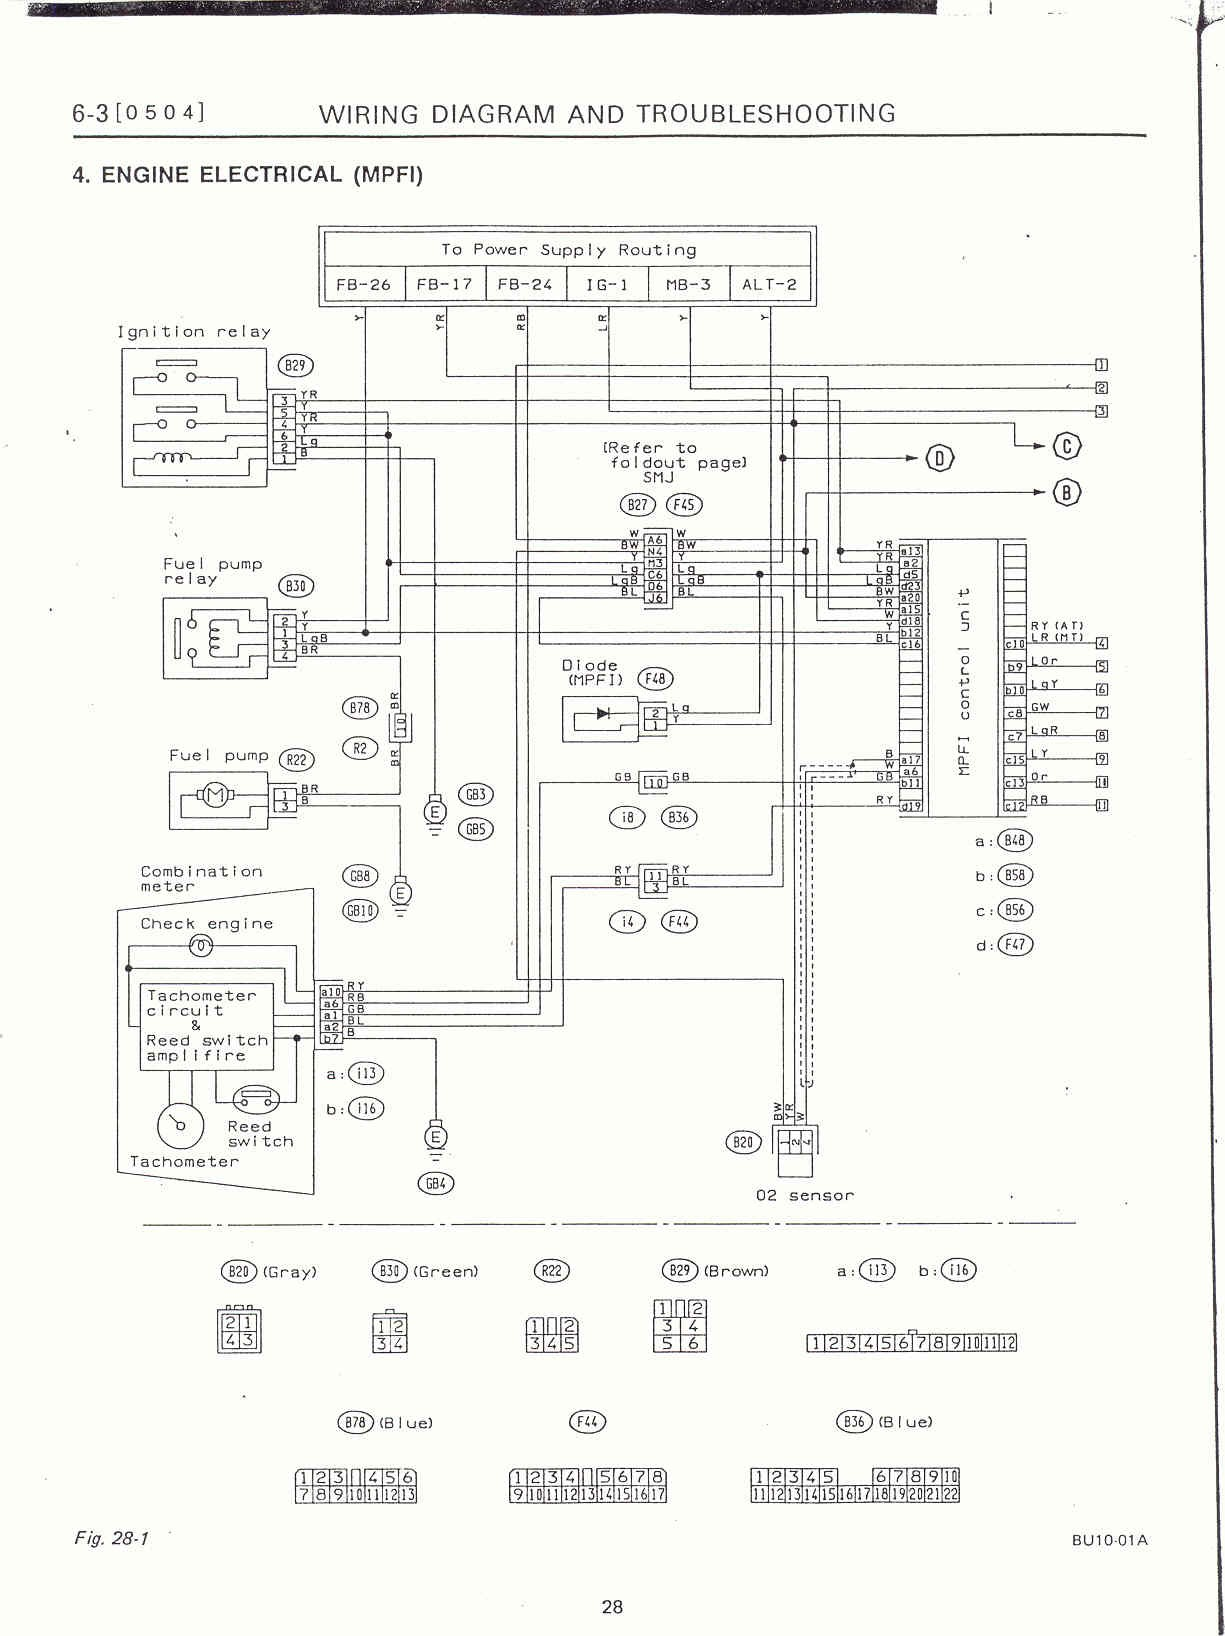 126cc 5hp Subaru Engine Diagram Wiring Diagram Tutorial